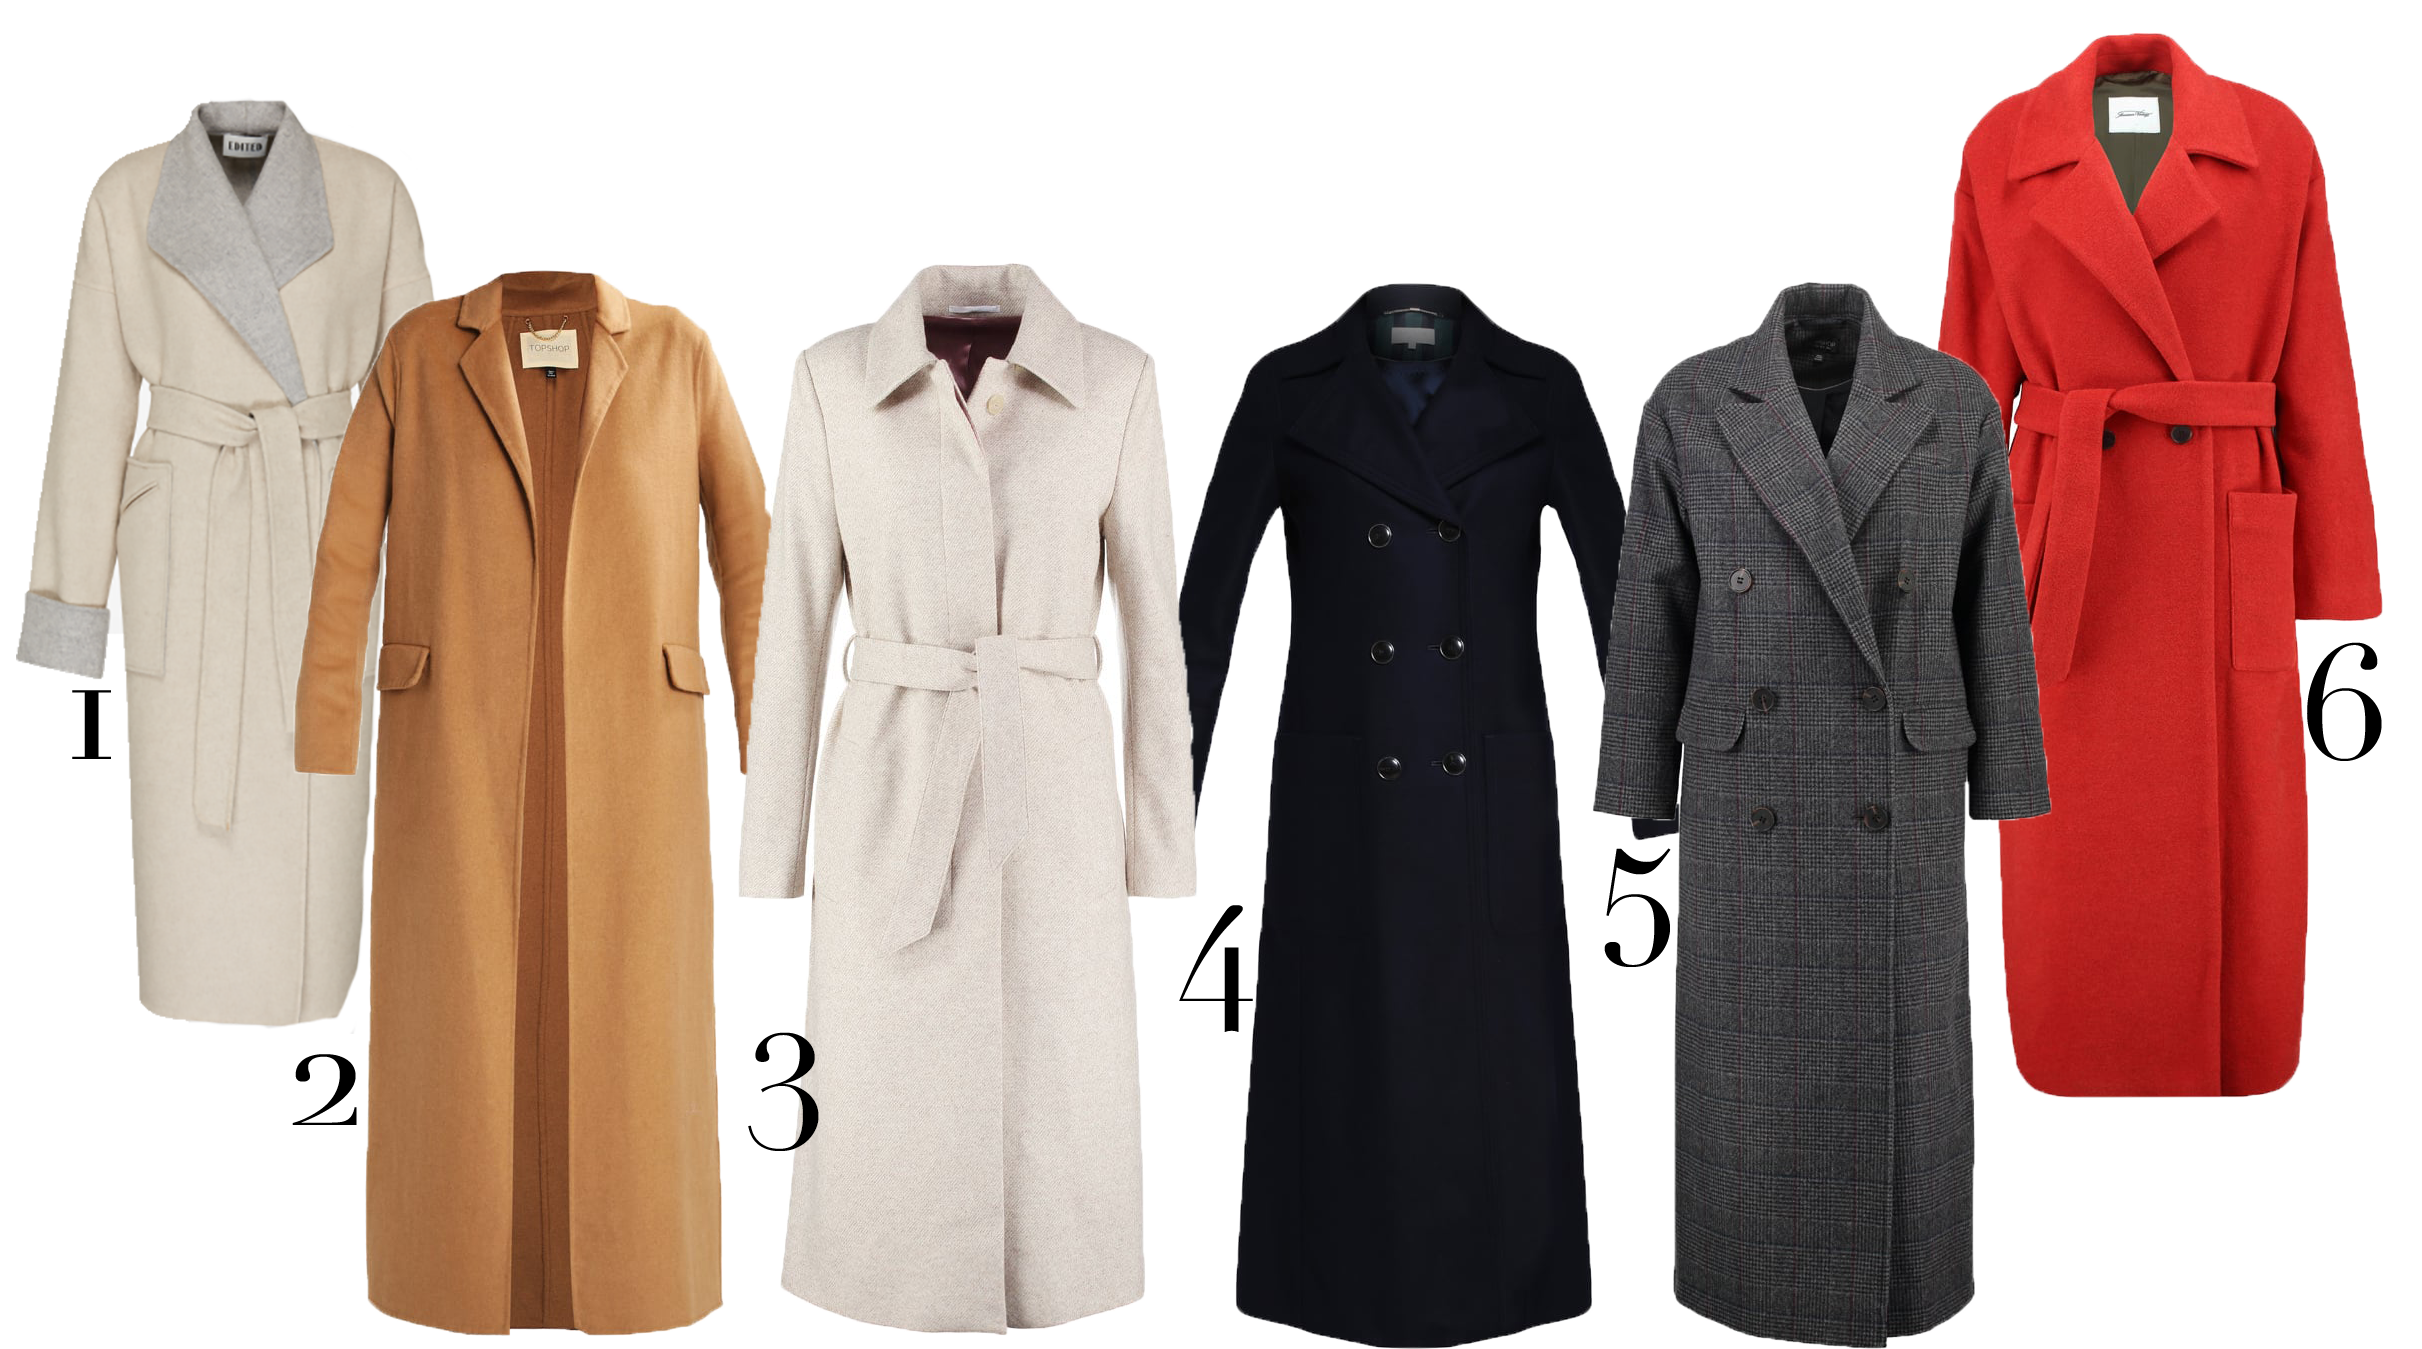 masha-sedgwick-long-coats-shopping-fashion